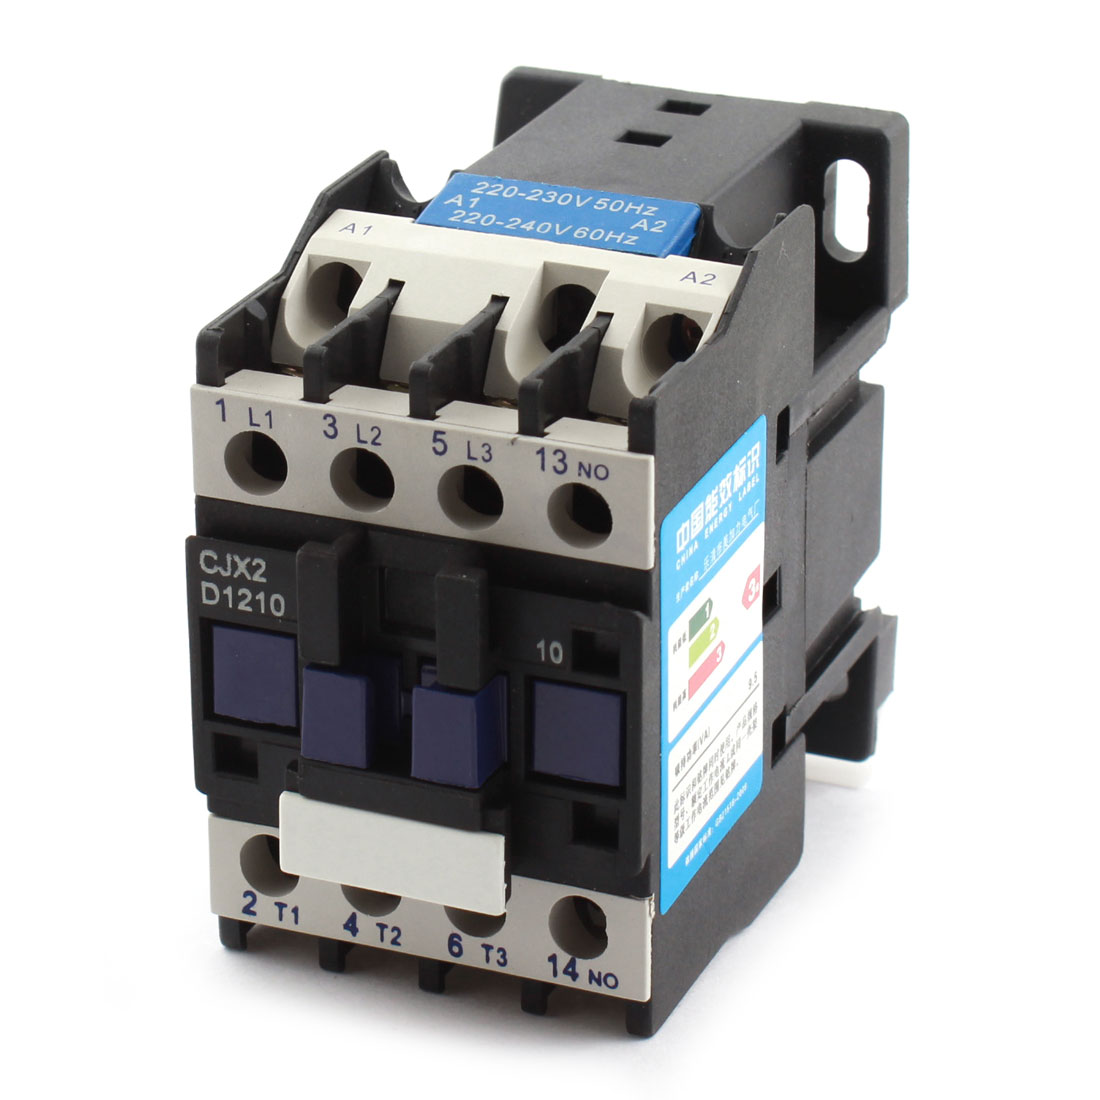 CJX2-12100 35mm DIN Rail Mounting 3-Phase Electric Power AC Contactor AC220V Coil Voltage